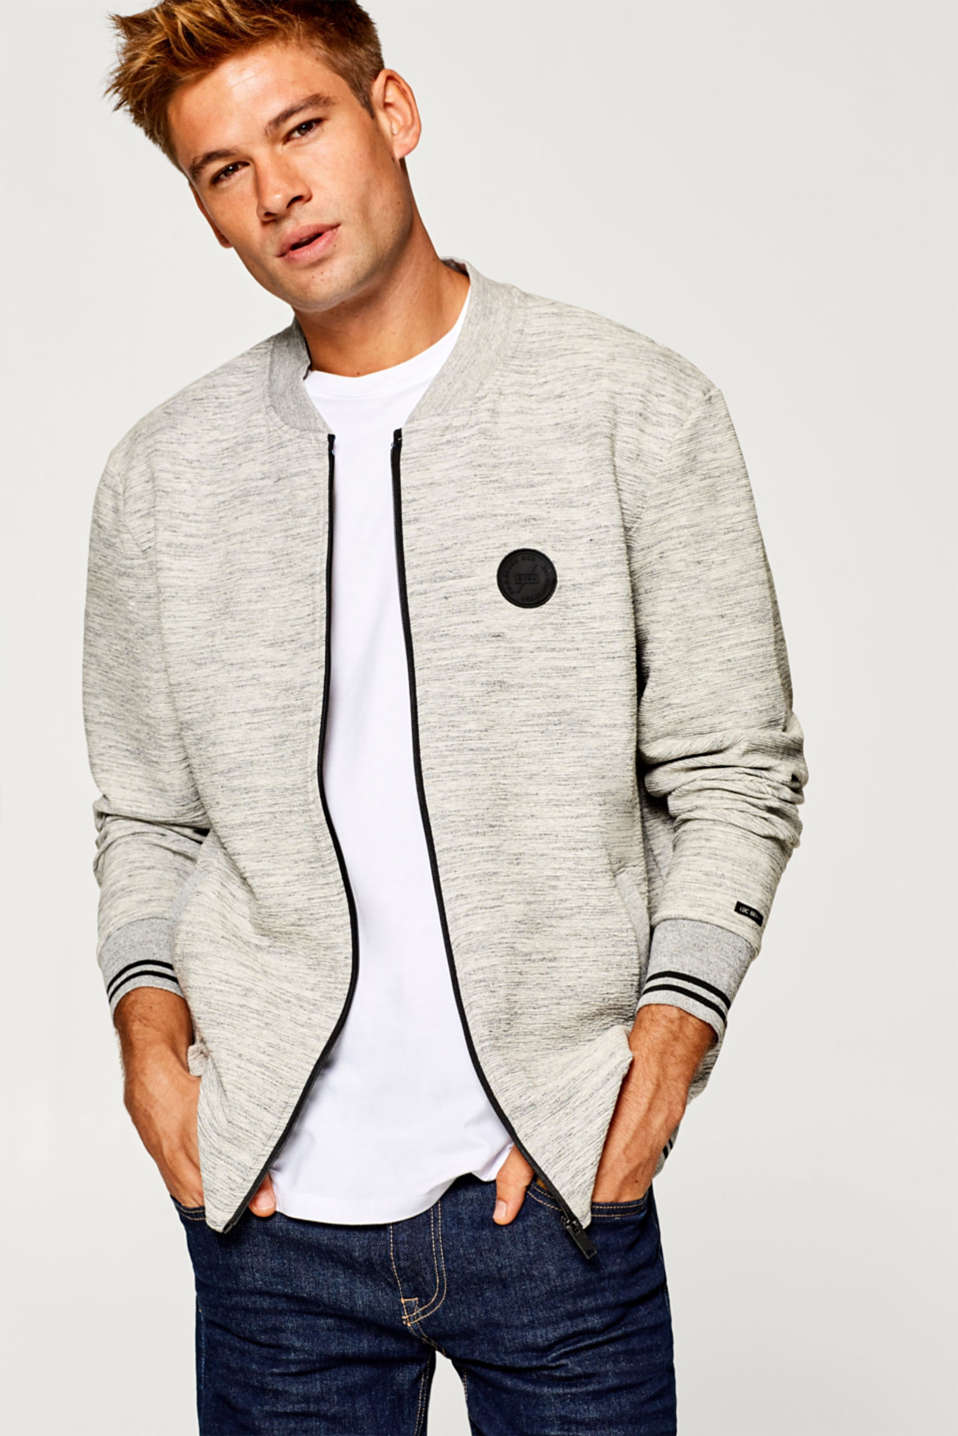 edc - Melange college style cardigan in sweatshirt fabric